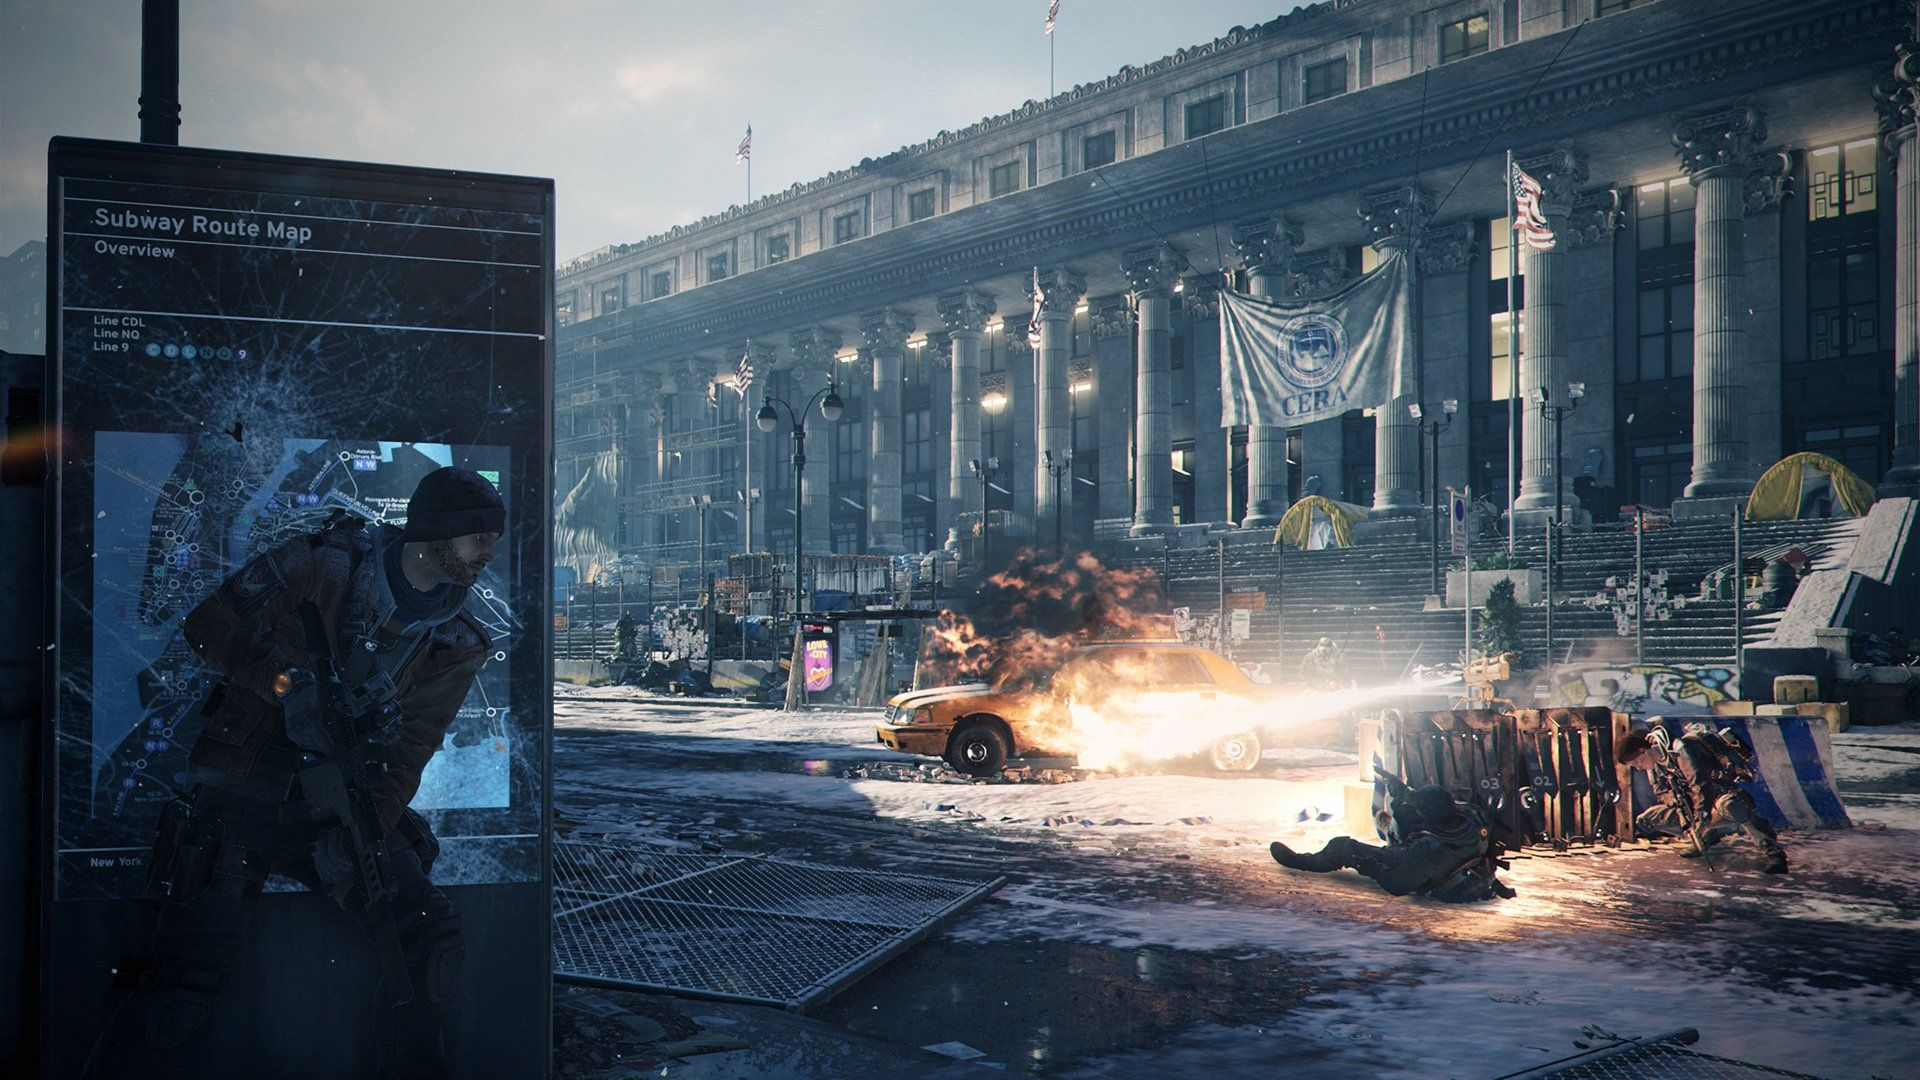 Tom Clancy's The Division (PC) - 4